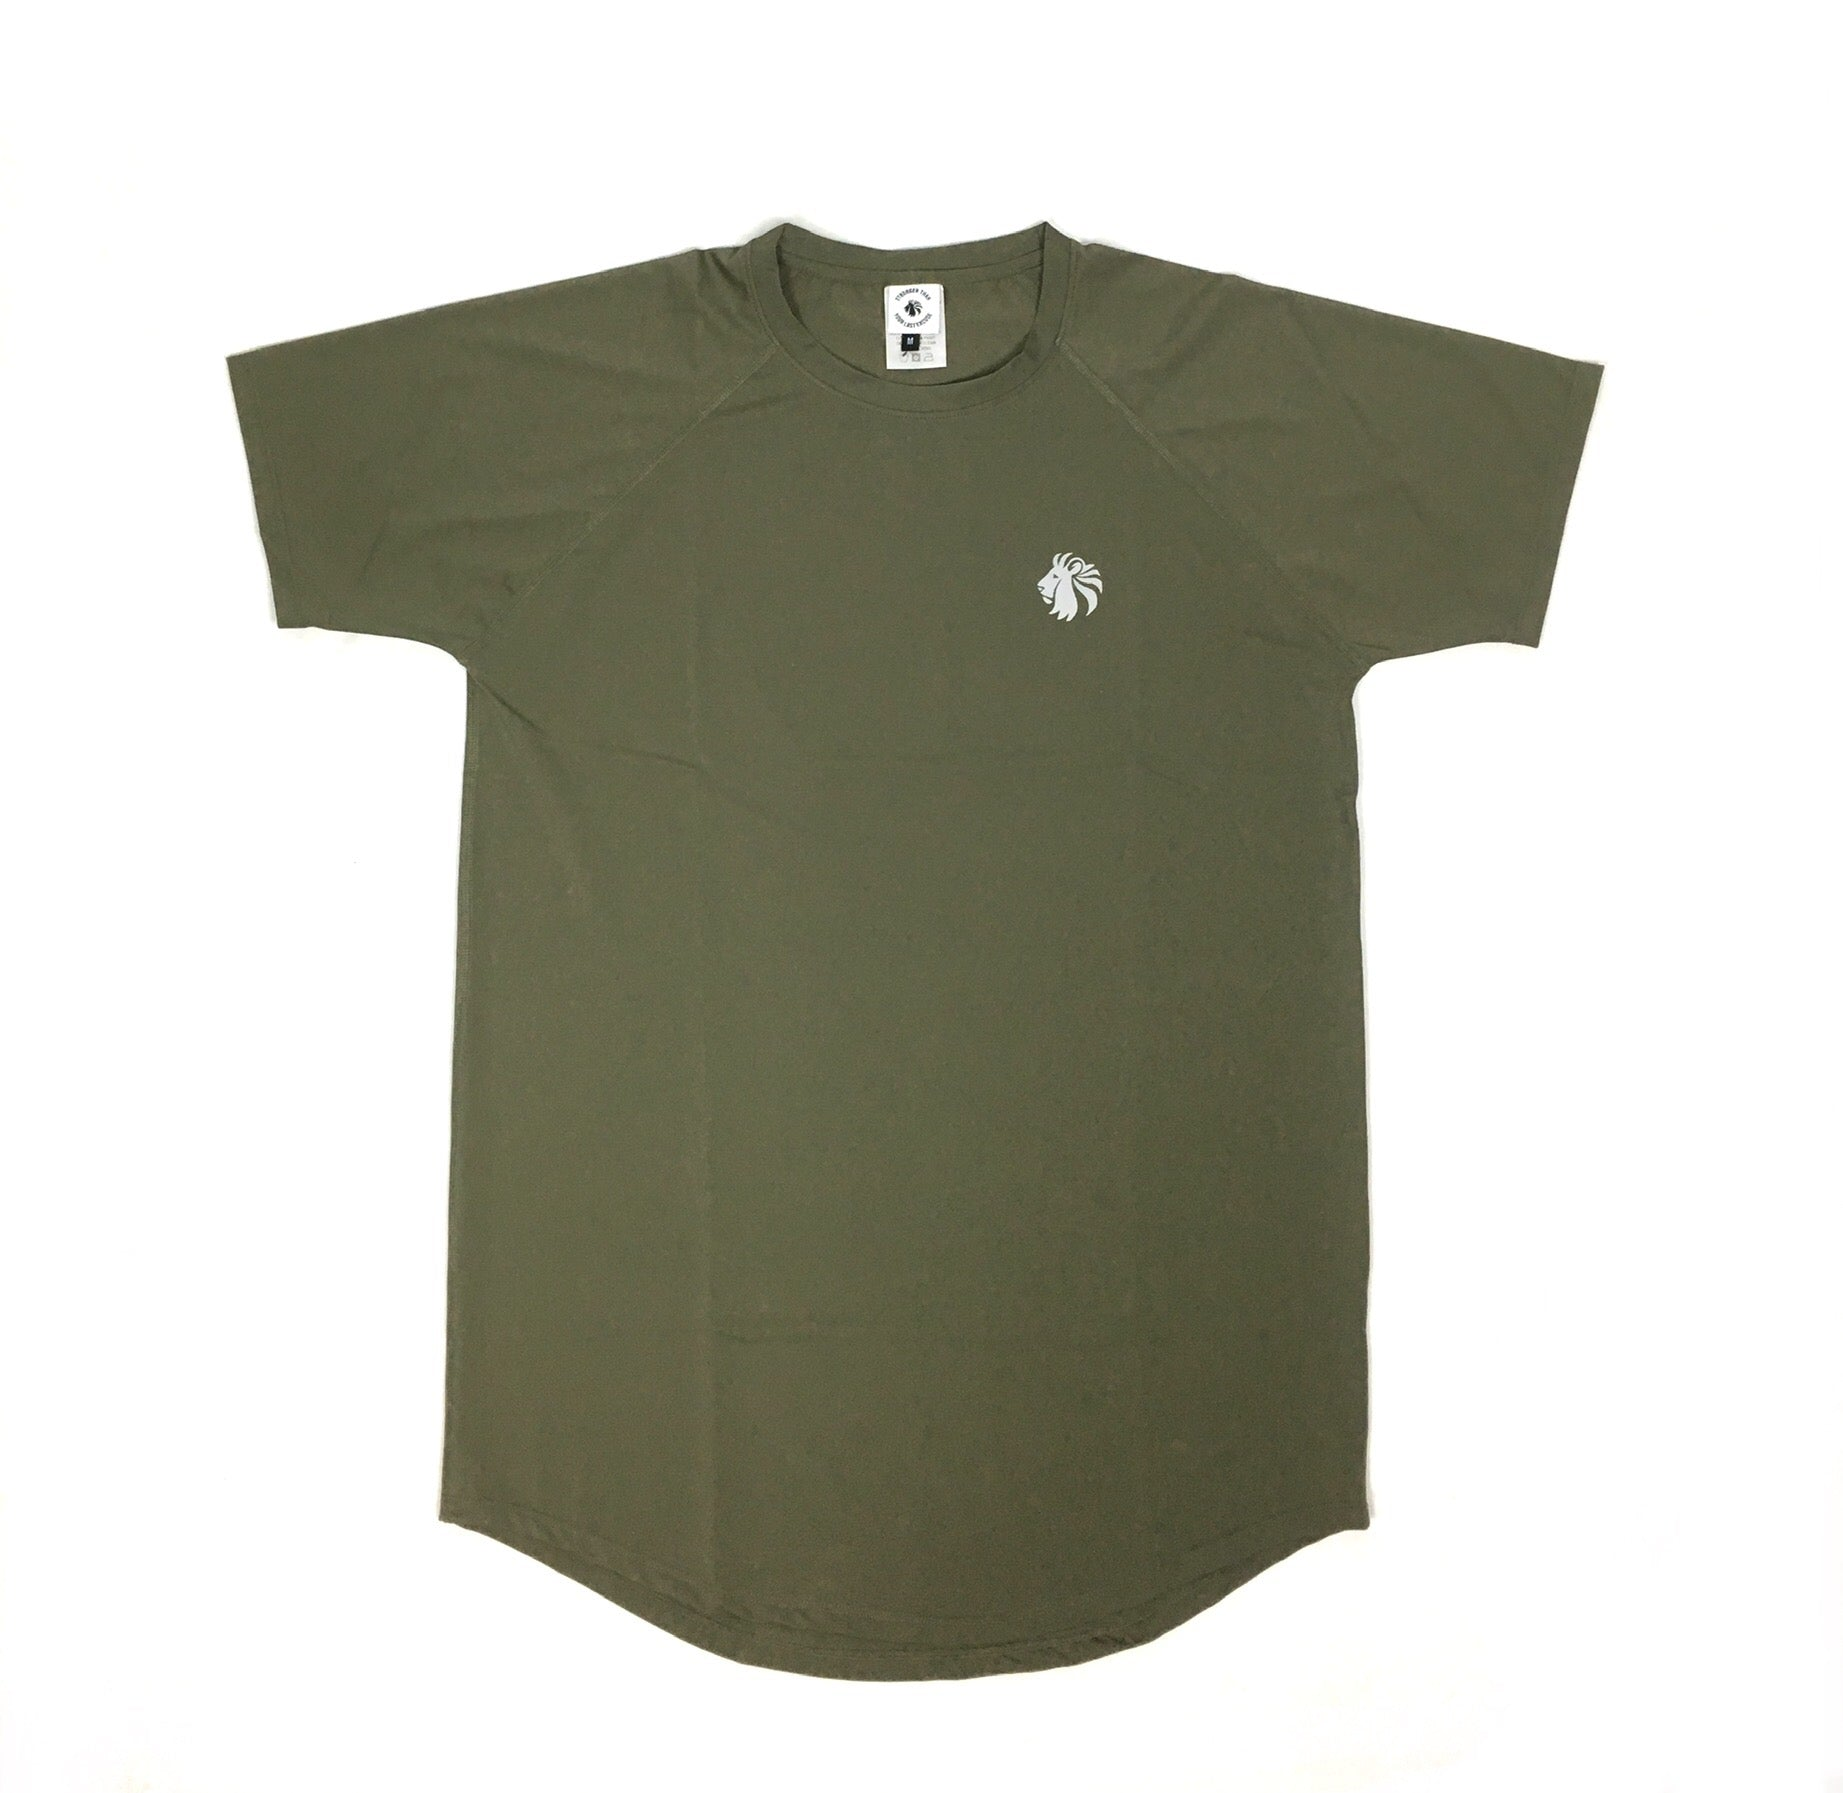 Perform Better Tee - Olive Smoke